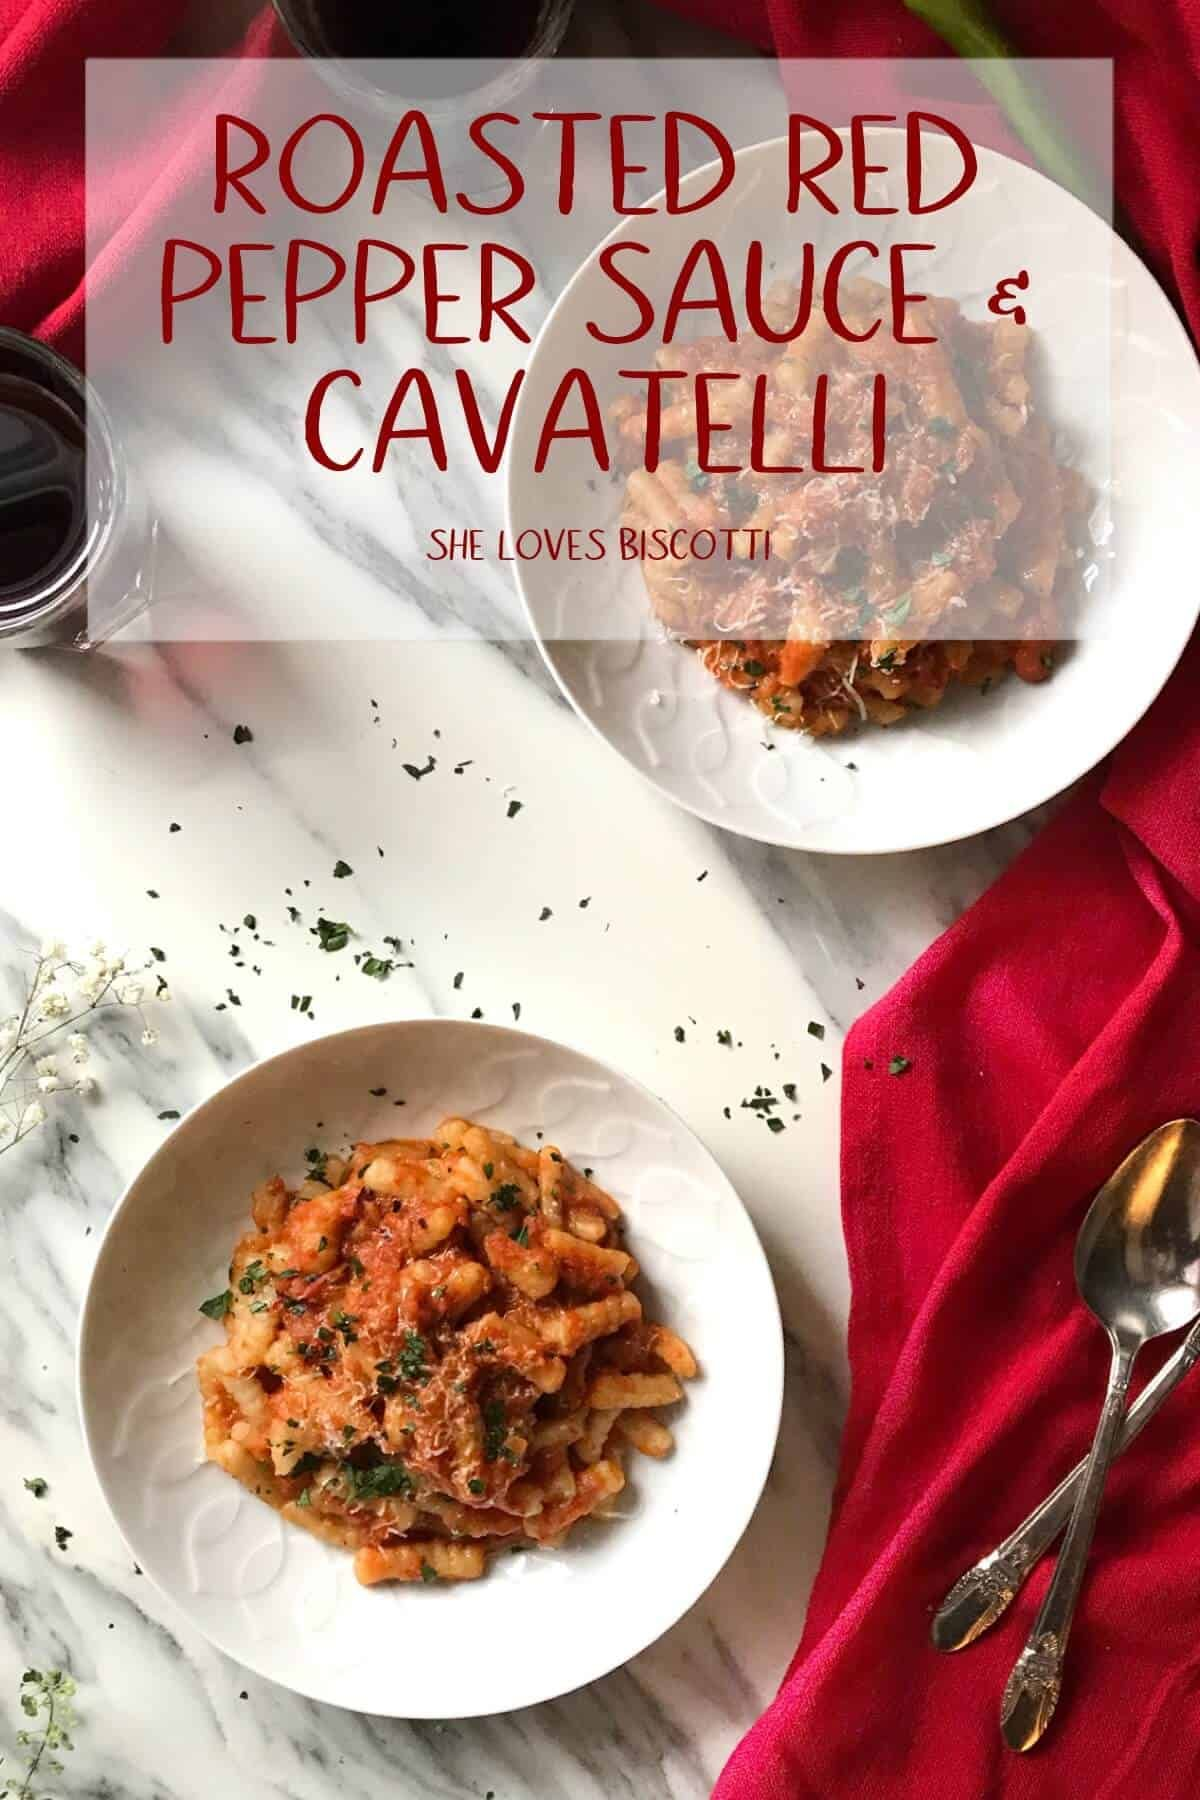 Roasted Red Pepper Sauce And Cavatelli Red Pepper Sauce Cavatelli Pasta Healthy Pasta Recipe Cavatelli Home Real Food Recipes Pasta Recipes Recipes [ 1800 x 1200 Pixel ]